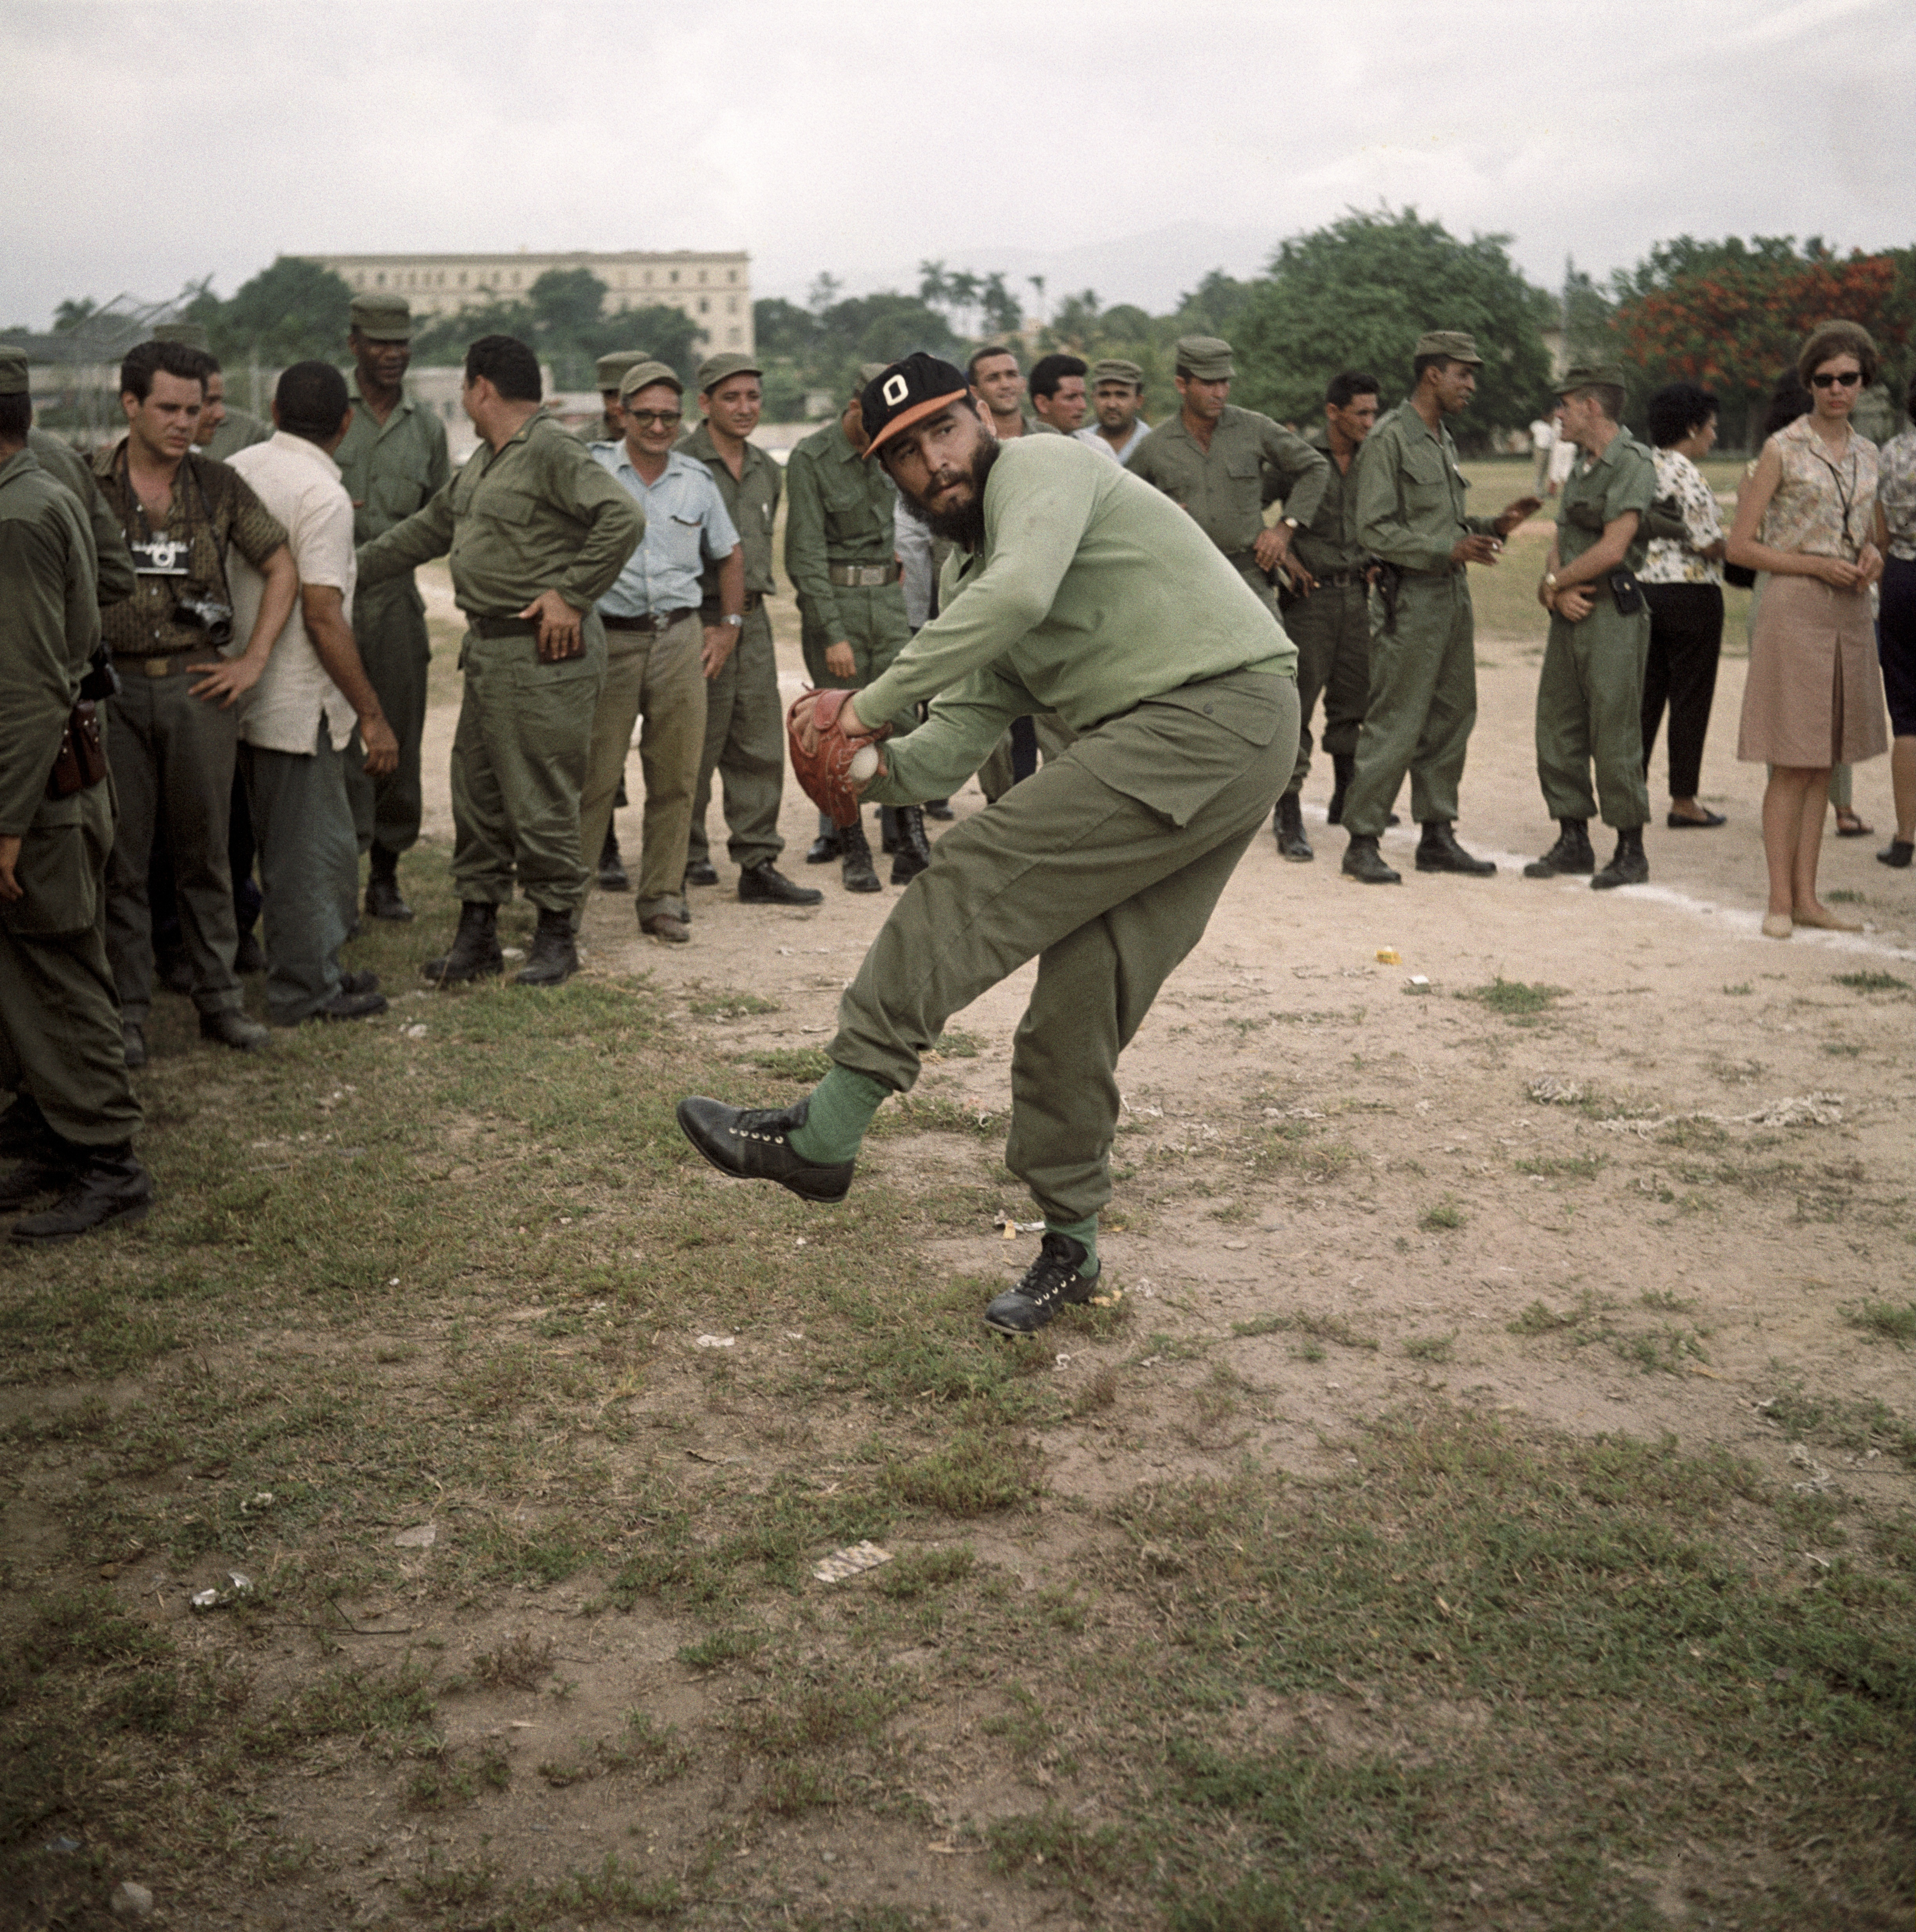 Cuban leader Fidel Castro winds up to throw a baseball in 1964.